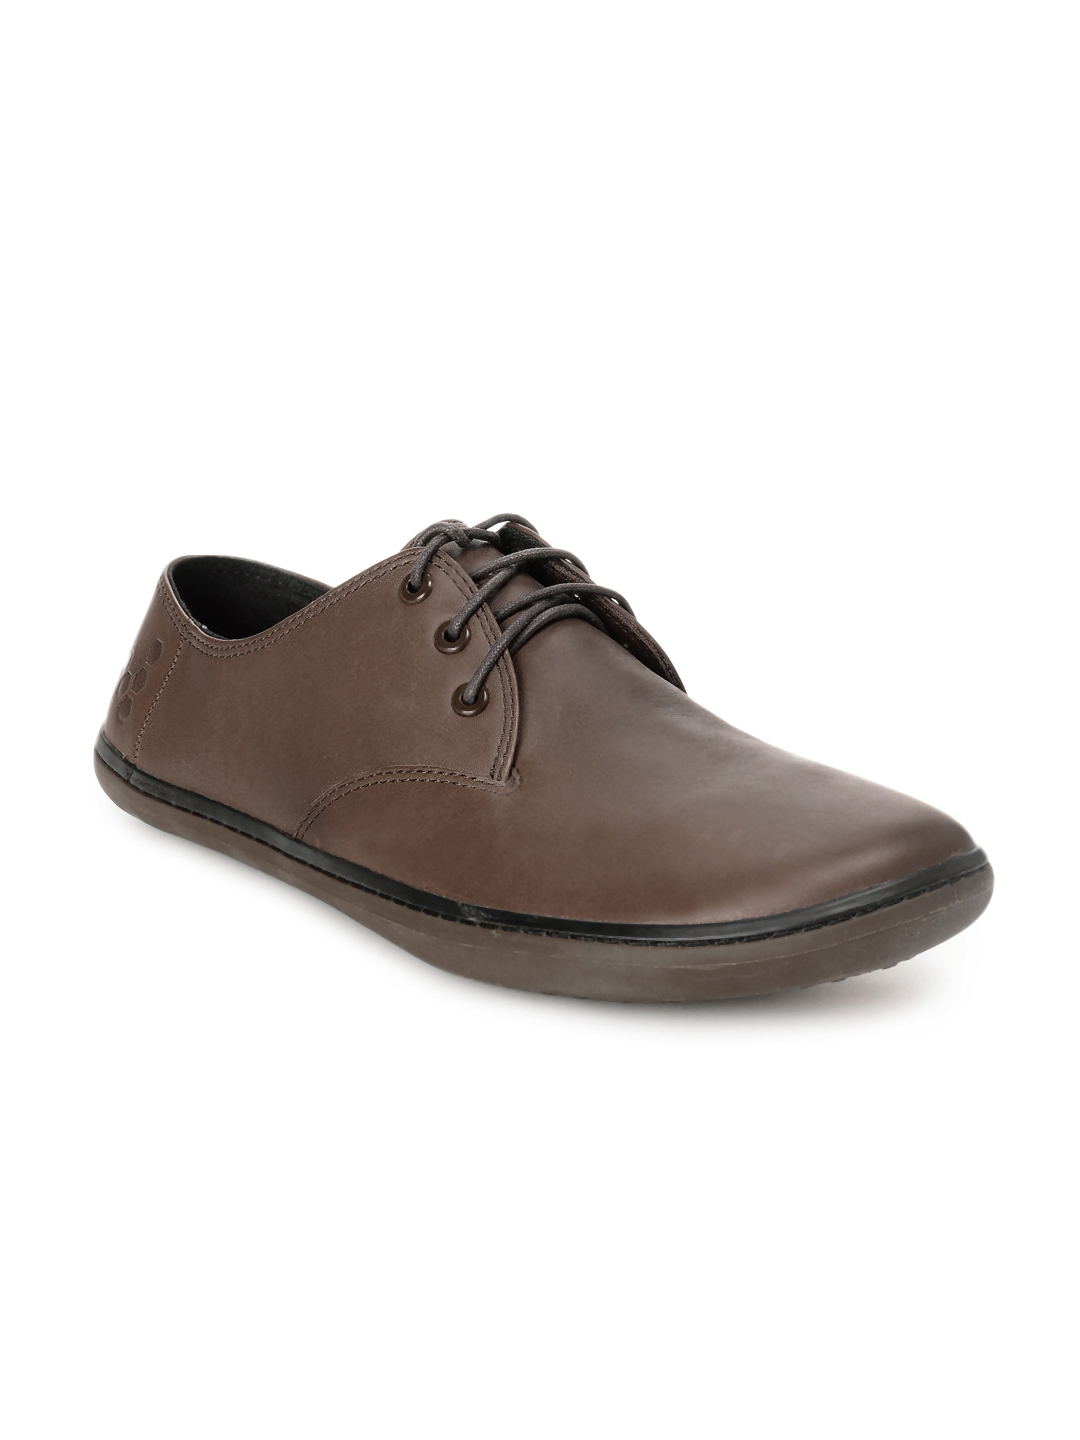 VIVOBAREFOOT Men Brown Formal Shoes